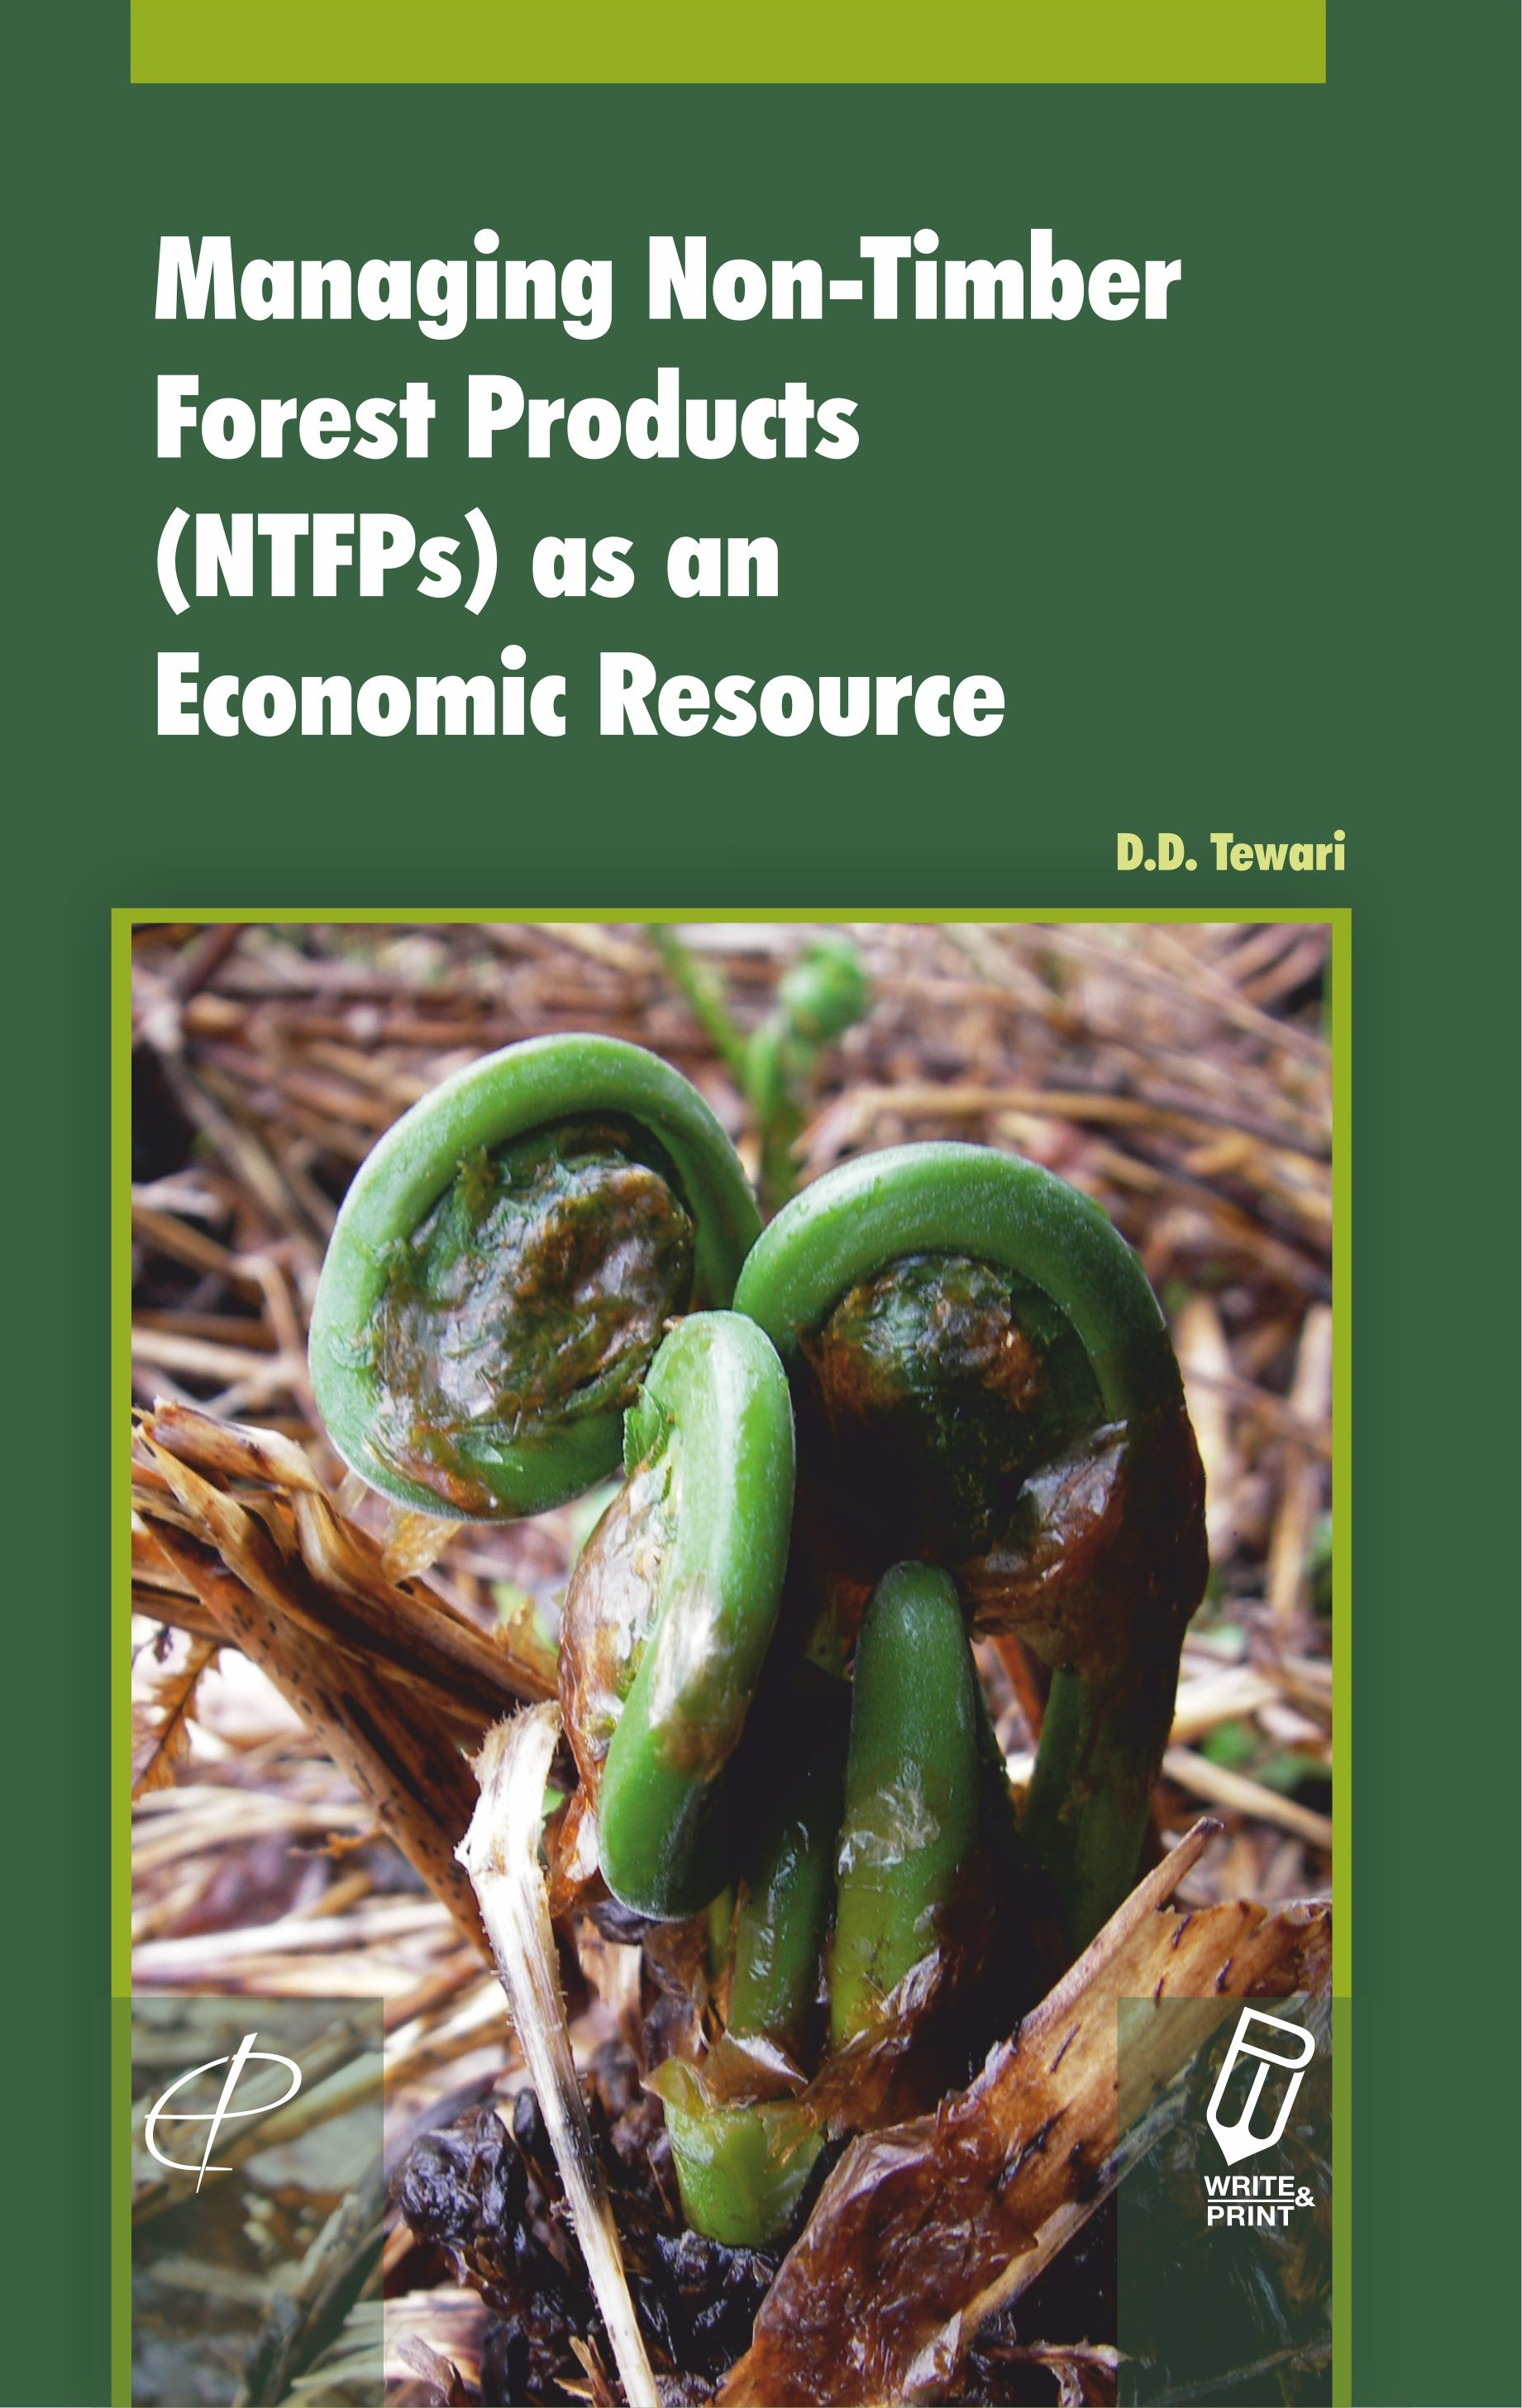 Managing Non-Timber Forest Products (NTFPs) as an Economic Resource